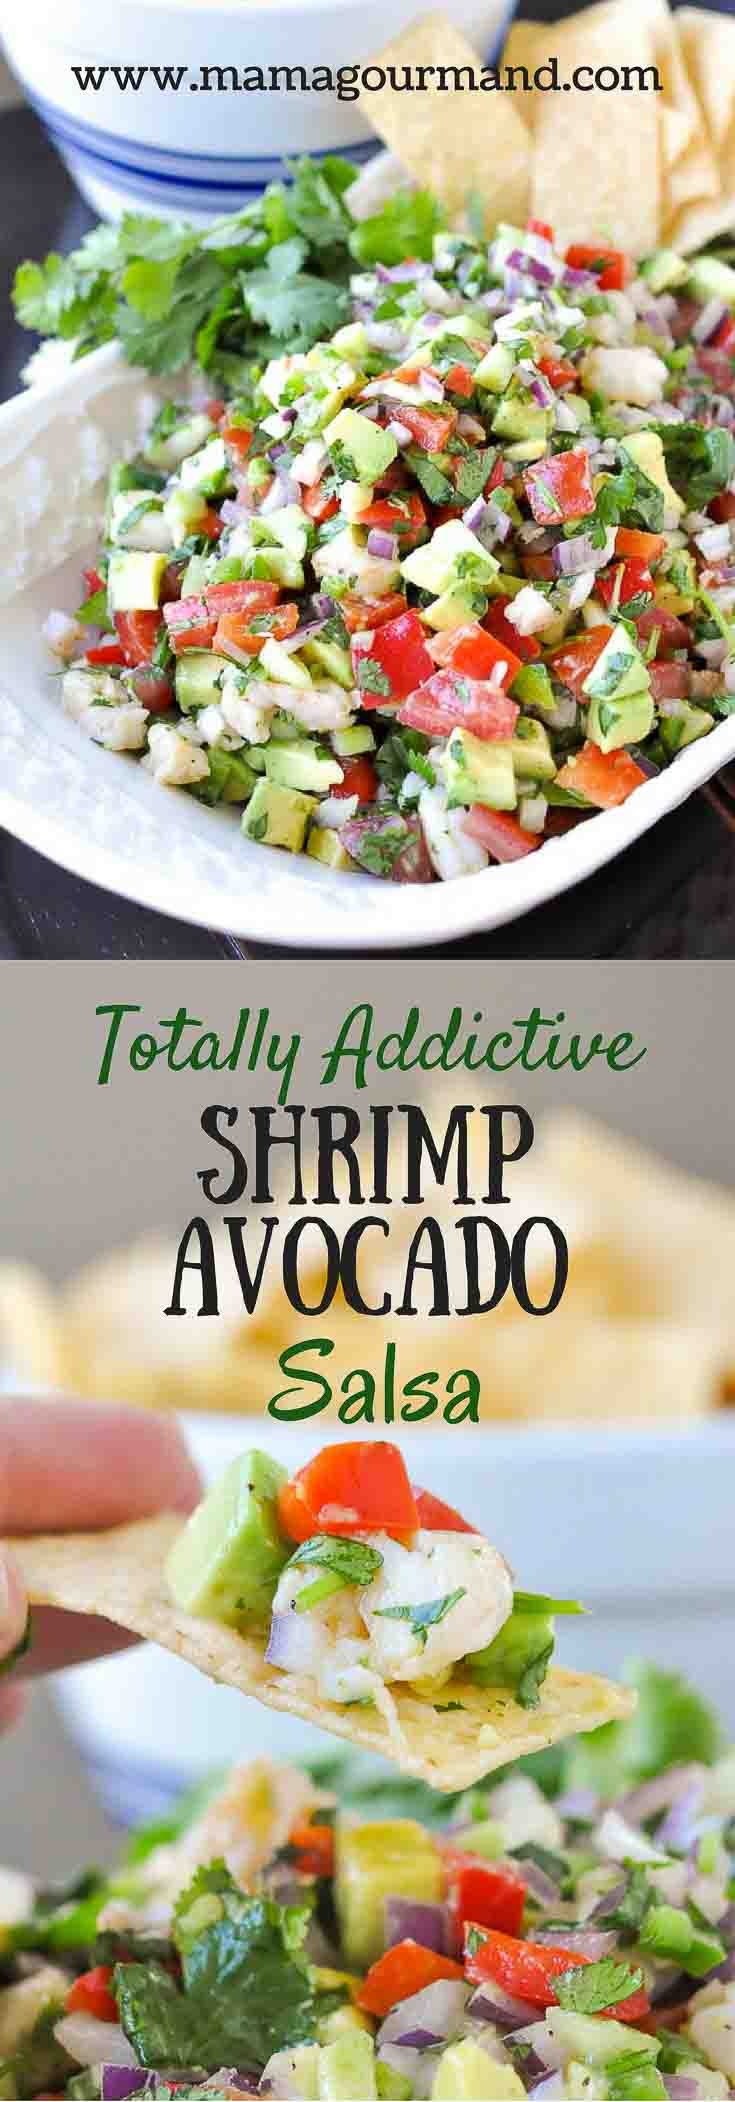 Totally Addictive Shrimp Avocado Salsa uses fresh garden ingredients and tosses together to make one surprisingly flavorful and addictive appetizer. https://www.mamagourmand.com